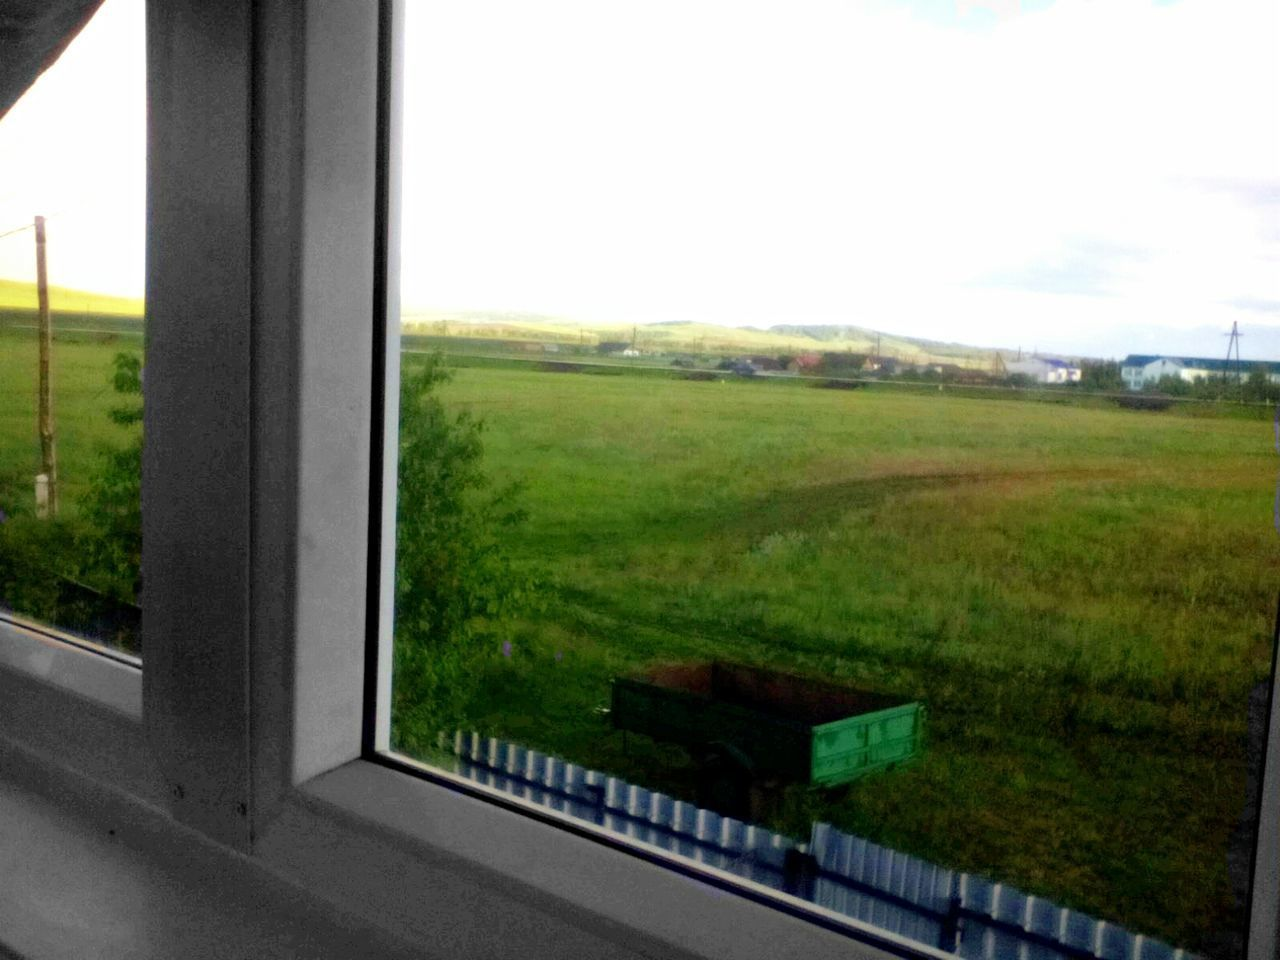 window, field, no people, sky, landscape, day, nature, grass, tree, road, scenery, indoors, close-up